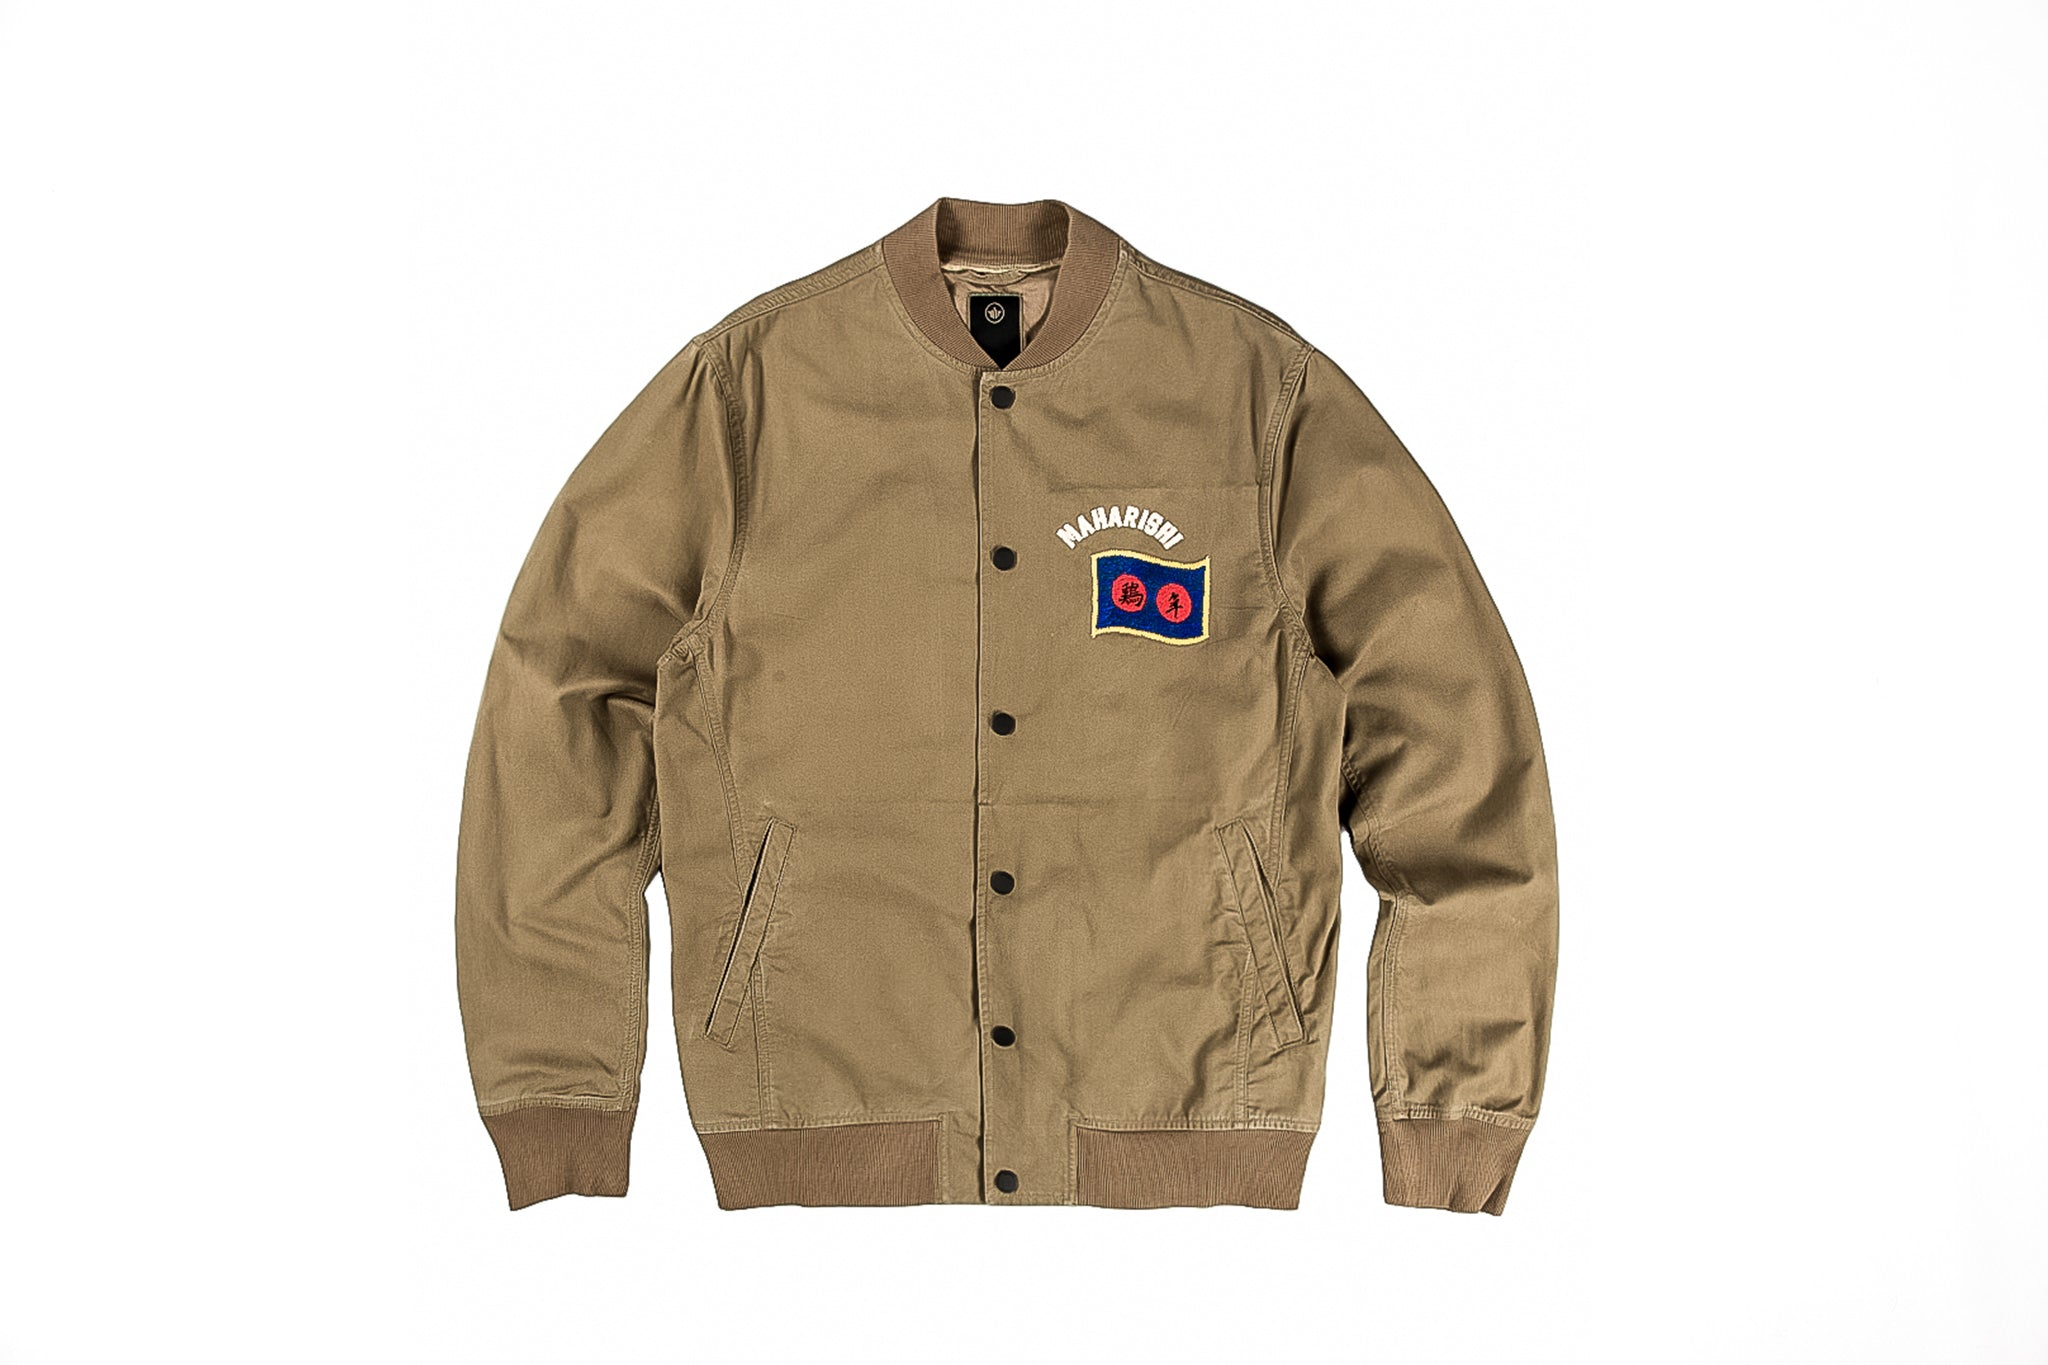 05e9bdce1e48c2 maharishi-ss17-6120-year-of-the-rooster-jacket-olive-211_front.jpg?v=1503938984